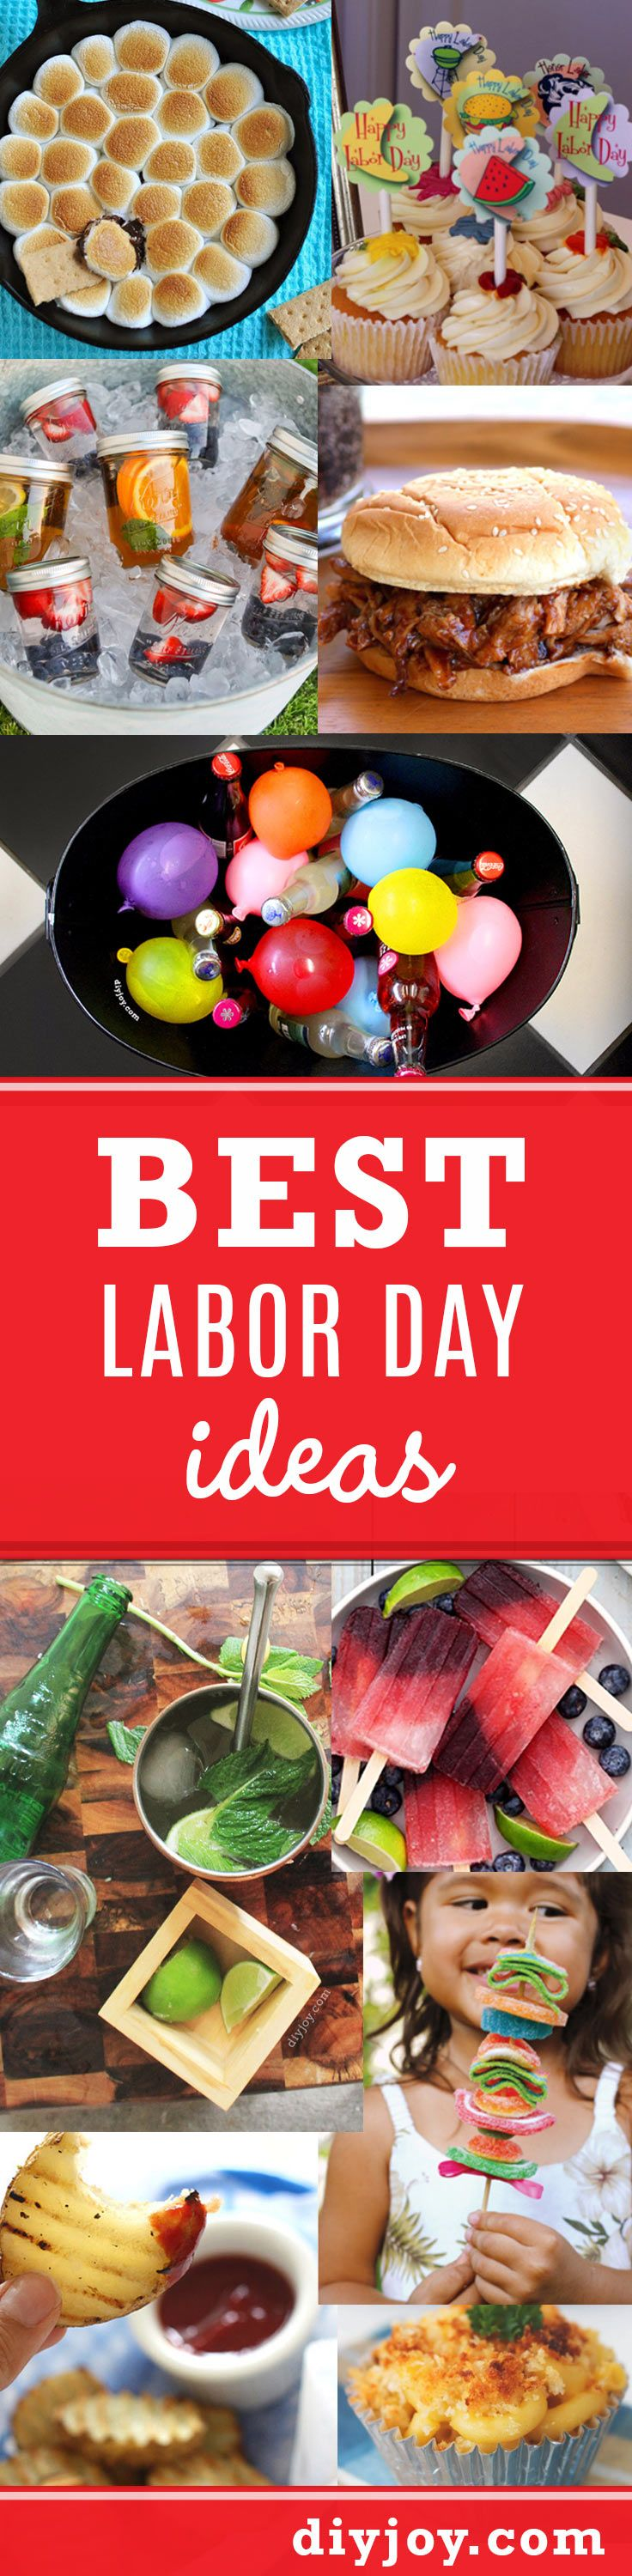 Best Labor Day Ideas for Party Decor, Food and Drinks | DIY Party Planning for a Holiday Crowd